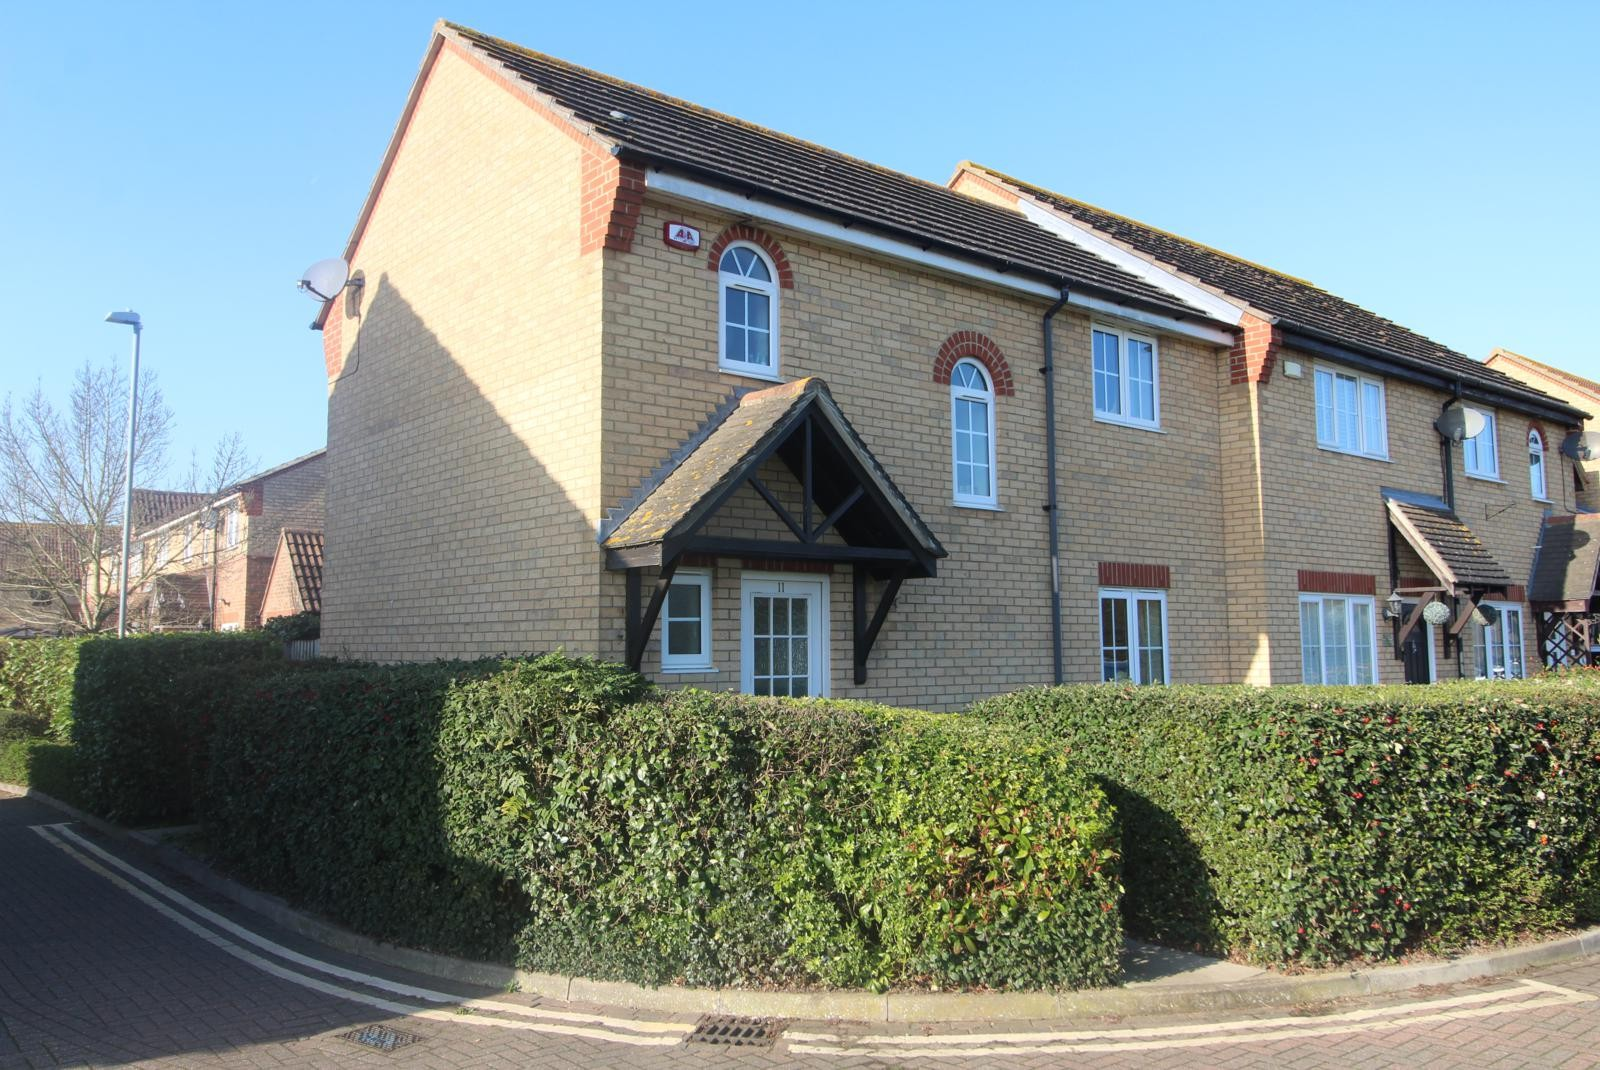 Magnolia Close, South Ockendon, Essex, RM15